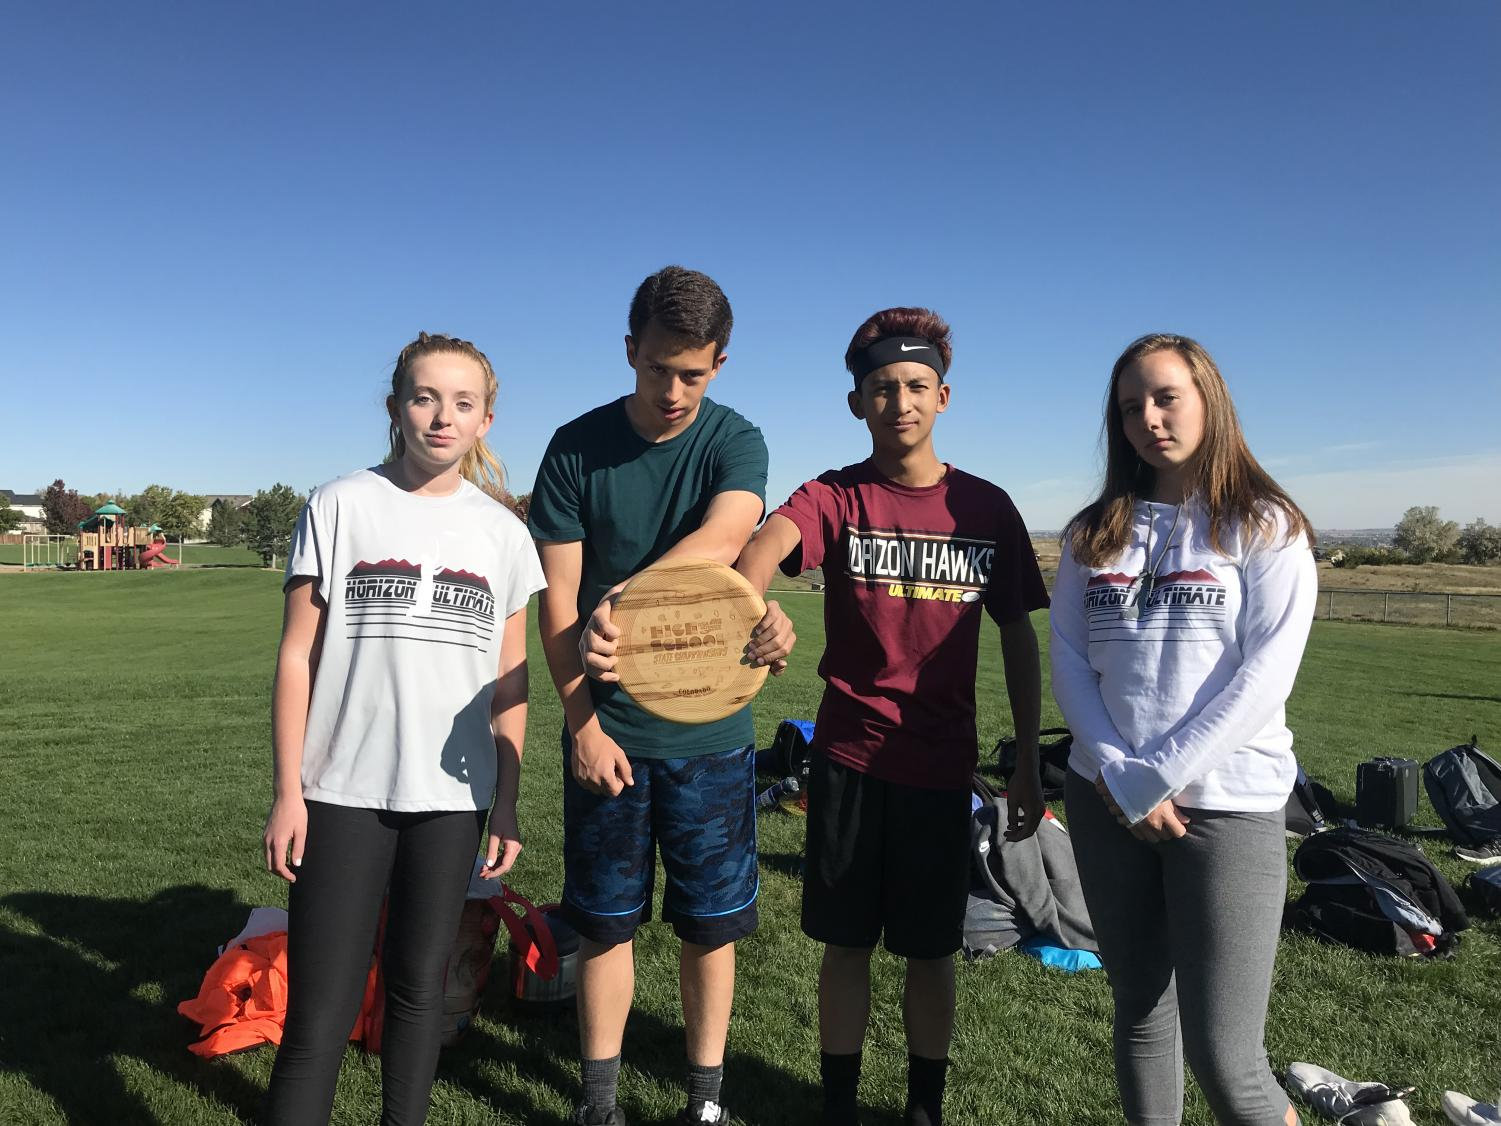 Madison Endicott (10) - Junior Captain, Samuel Ruiz-Harding (10) - Junior Captain, Ethan Tran (10) - Head Captain, and Emily Dhainin (12) - Head Captain pose with their Spirit Award which they won during the 2017-2018 season